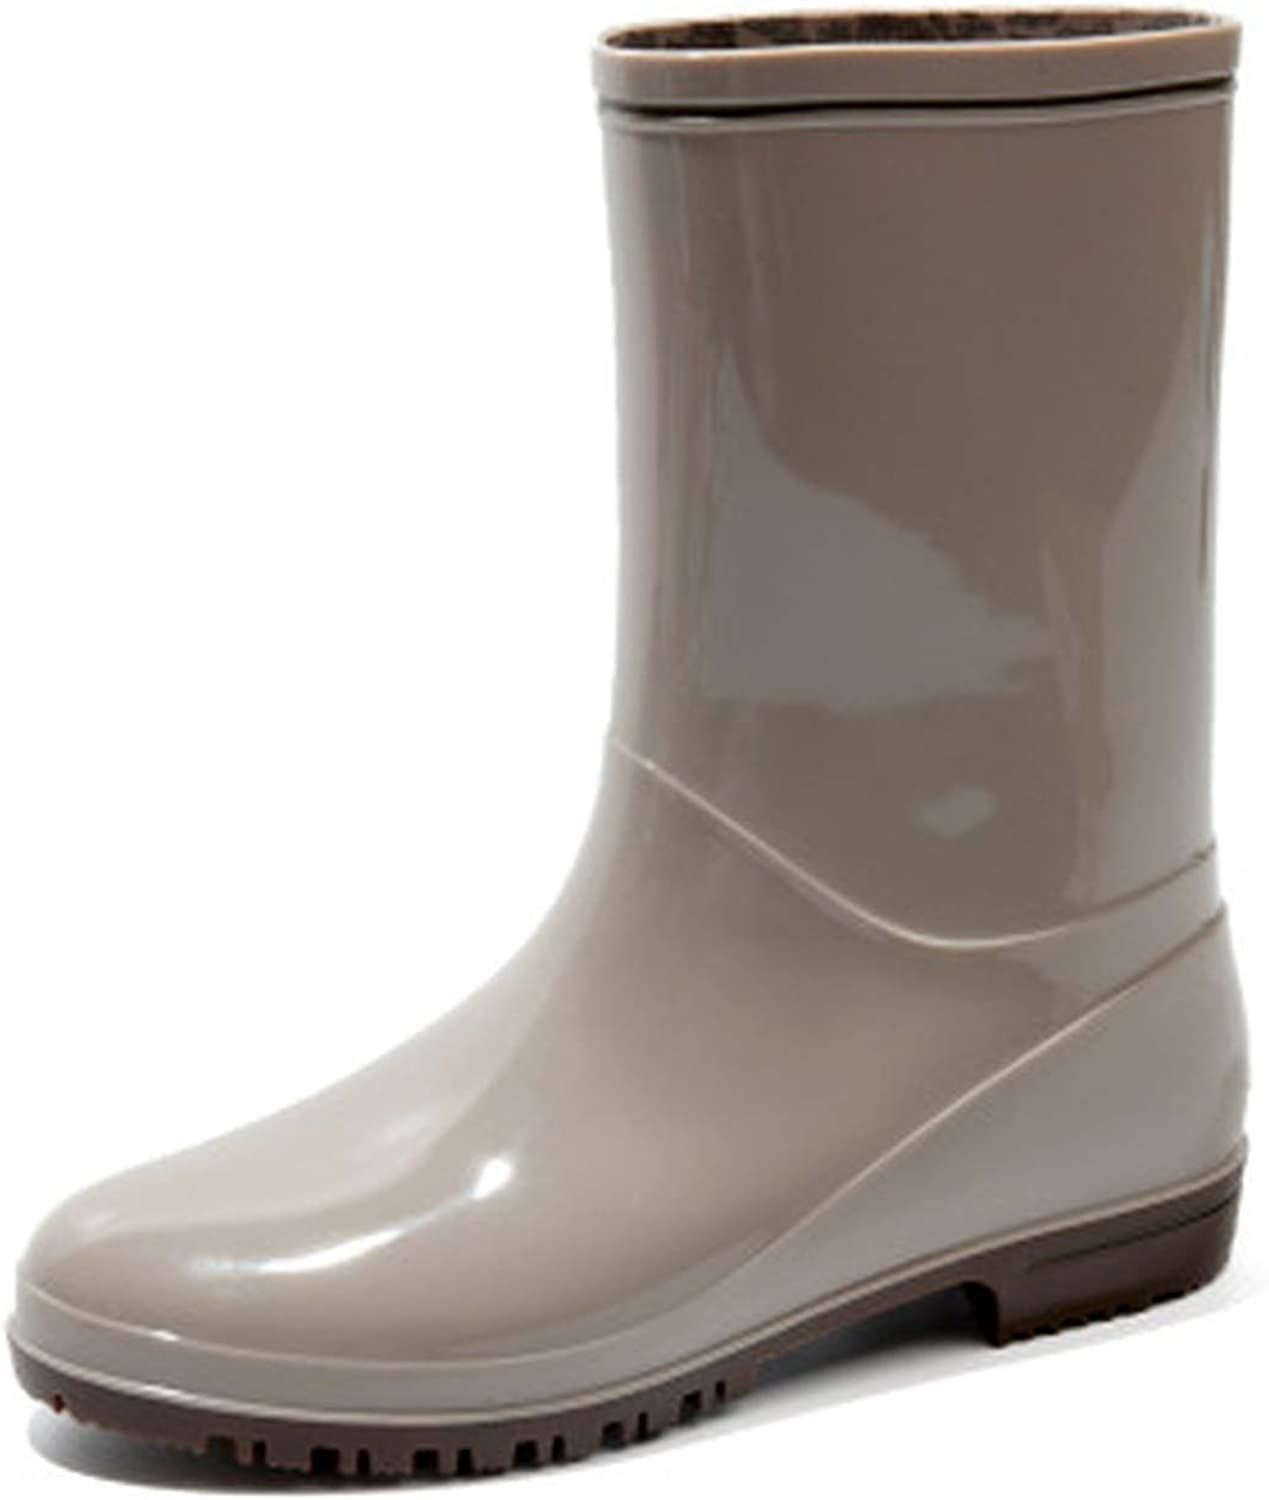 Hiviay Fashion New Women Rain Boot Waterproof Rain Ankle Boots Female Water Lady shoes Women Ankle Boots